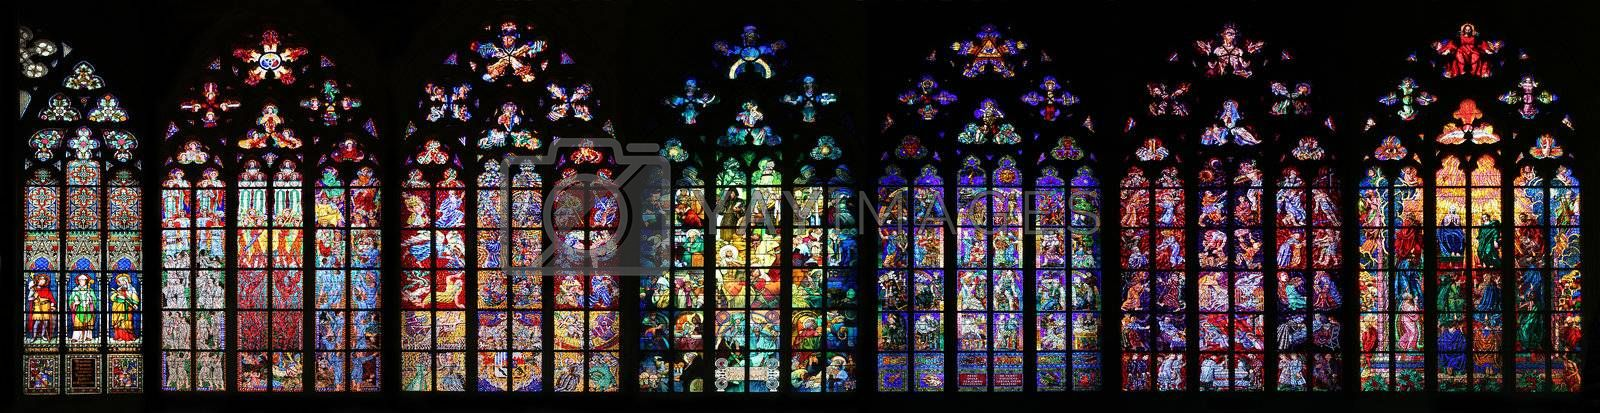 Royalty free image of St Vitus Stained Glass Window collection by LoonChild